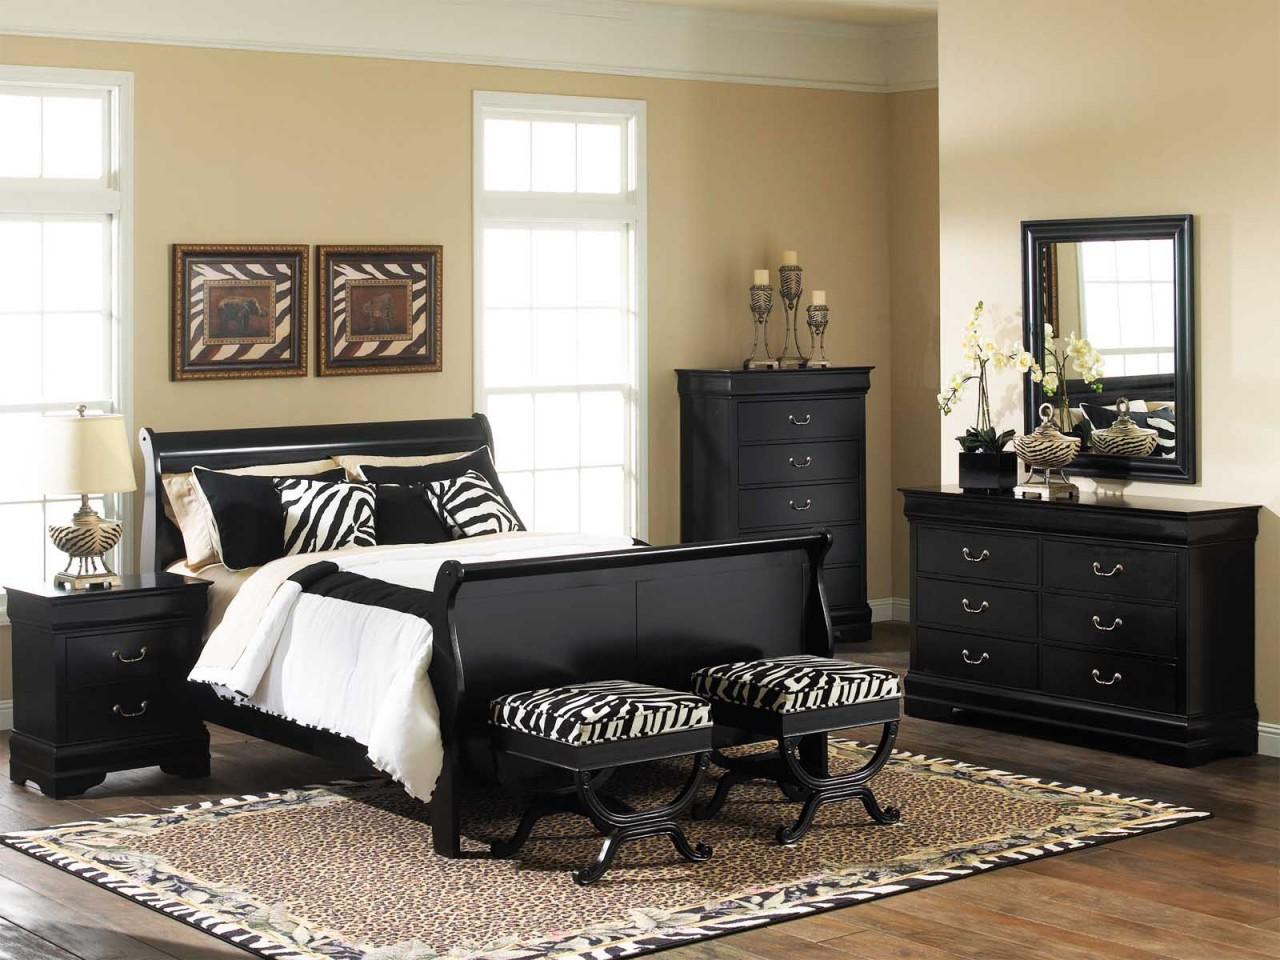 Decorate Your Bedroom The Stylish Black Lacquer Furniture Sets Interior